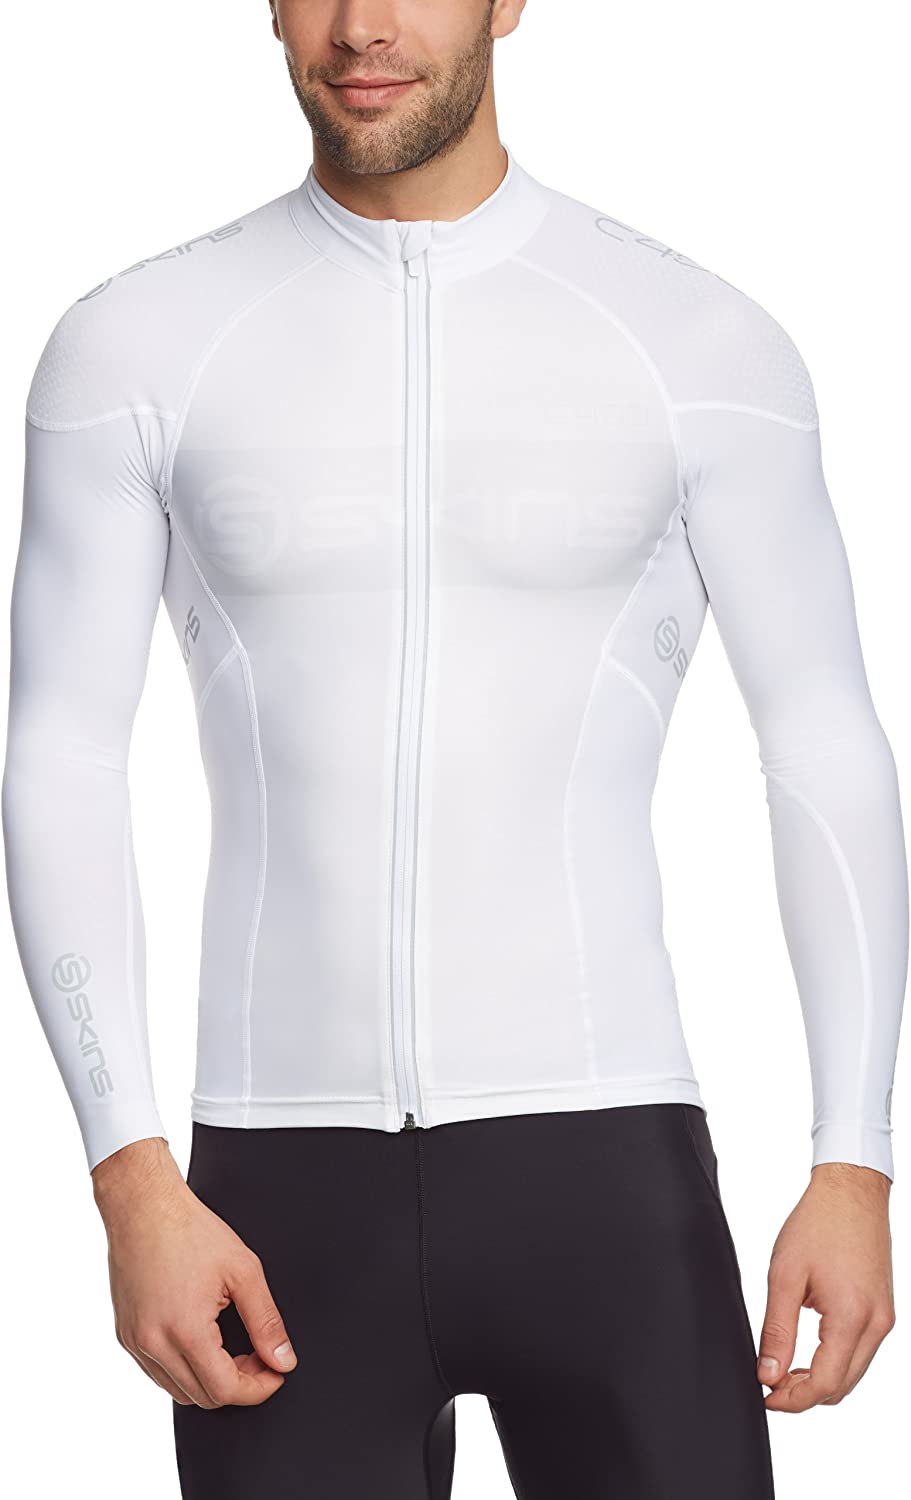 Skins Jersey Cycle C400 Men's Compression Long Sleeve